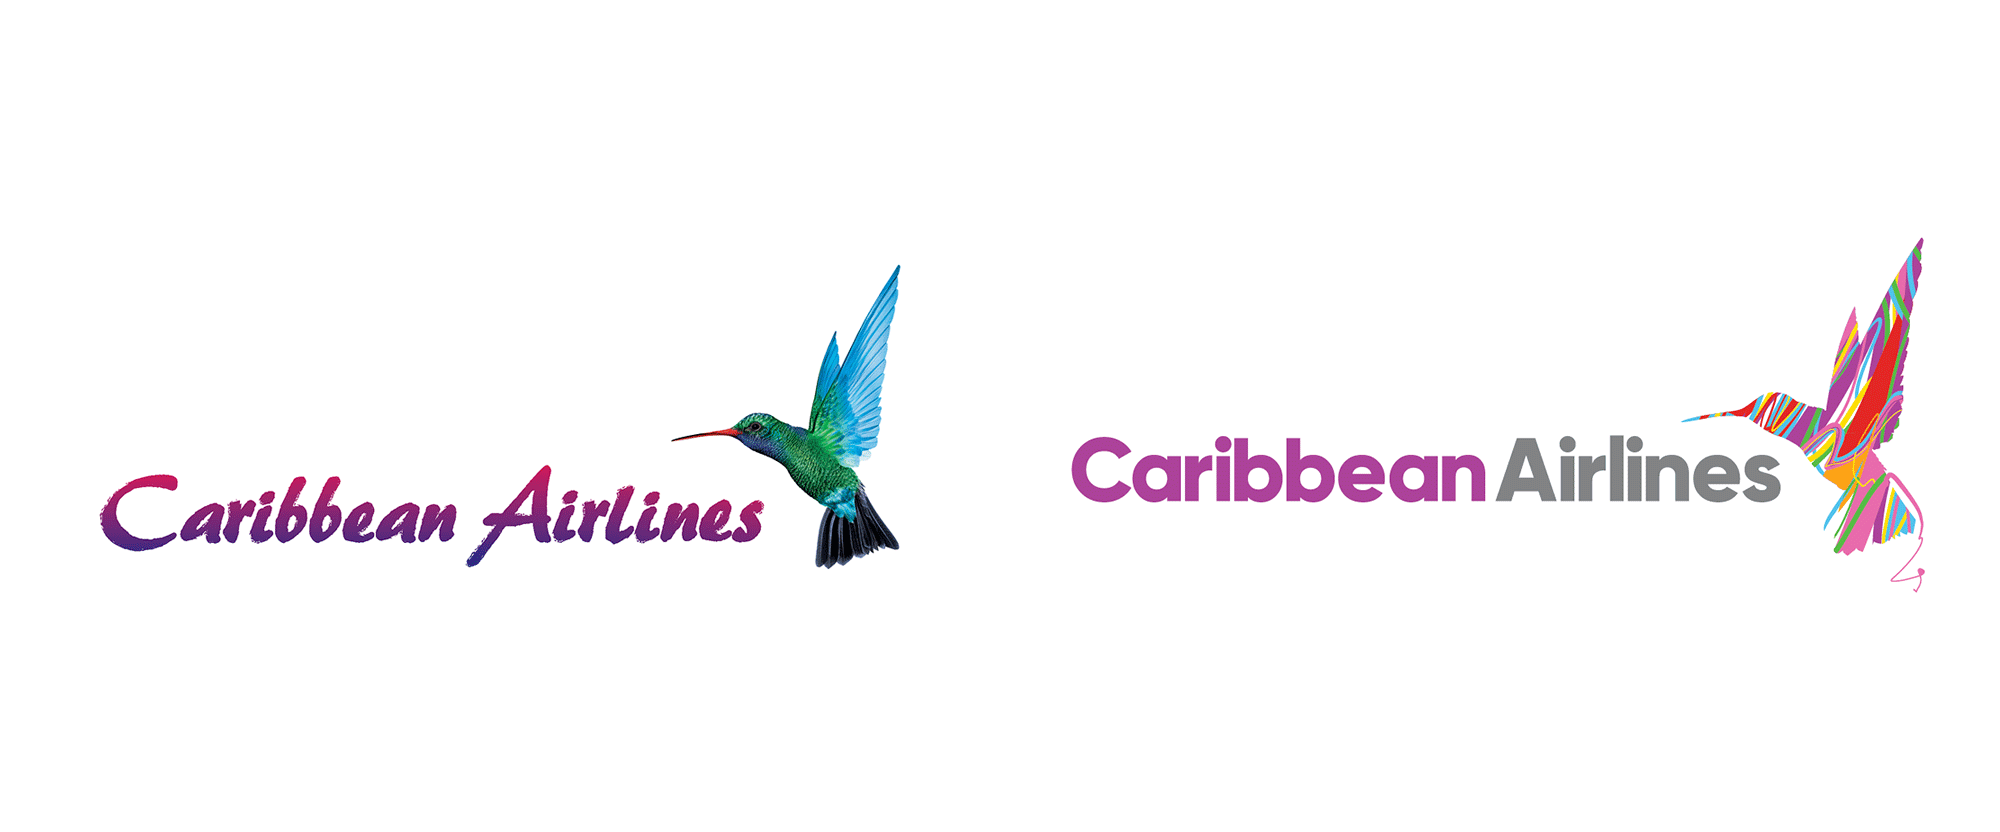 New Logo and Livery for Caribbean Airlines